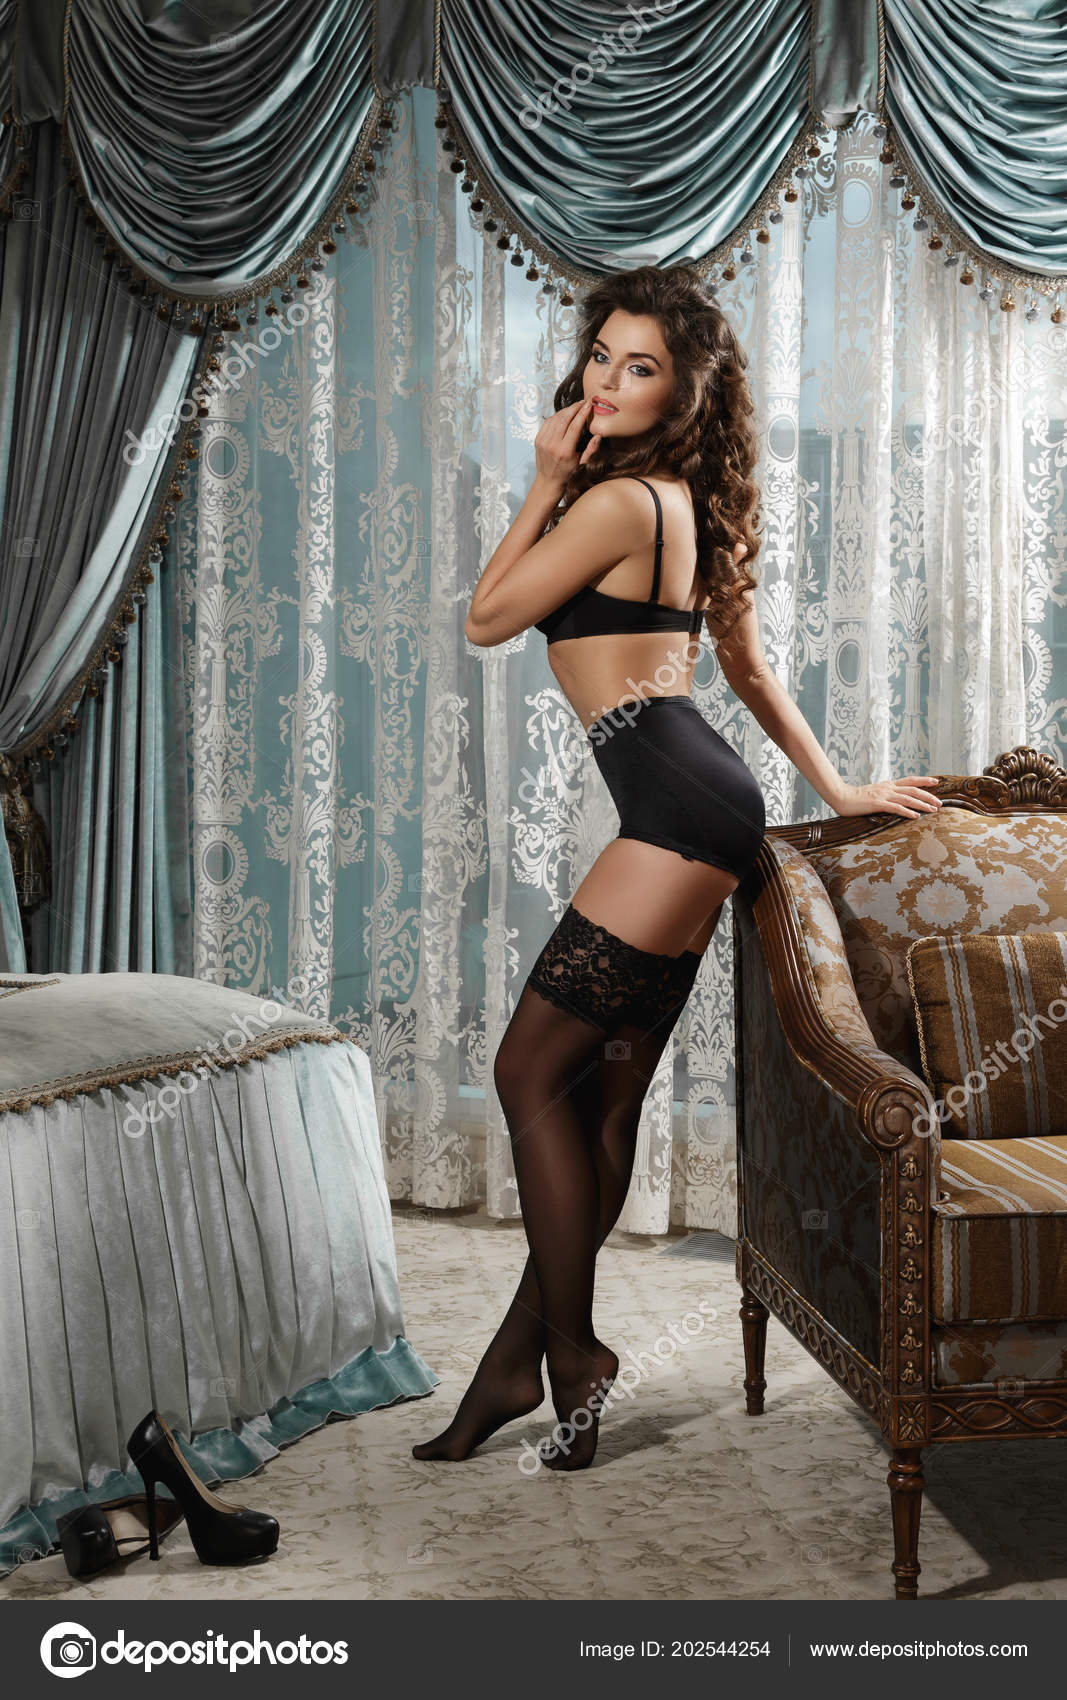 0f1d0d389 Sexy Woman Wearing Beautiful Lingerie Black Stockings Posing Bedroom —  Stock Photo